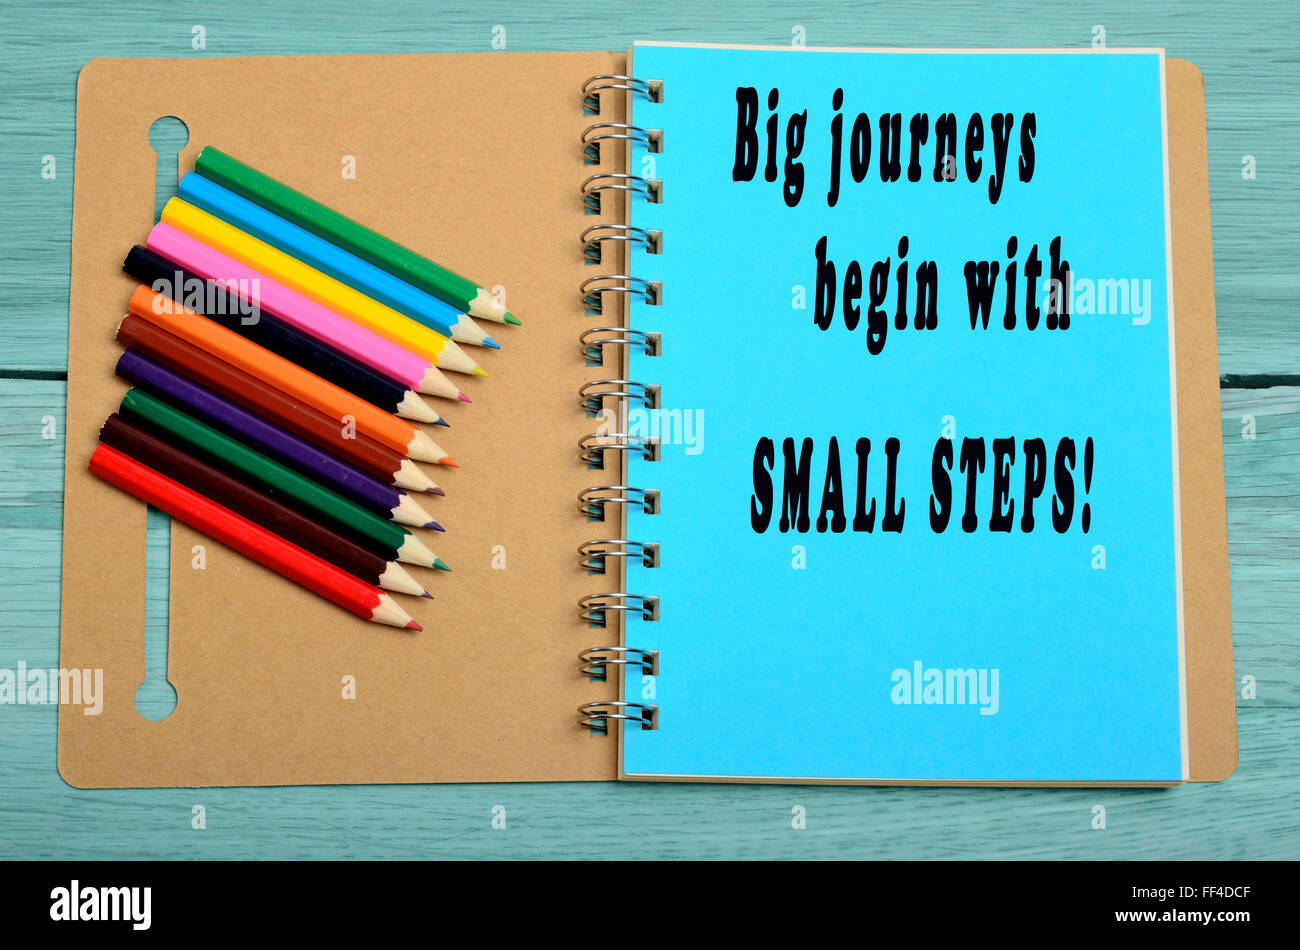 Big journeys begin with small steps written on notebook - Stock Image